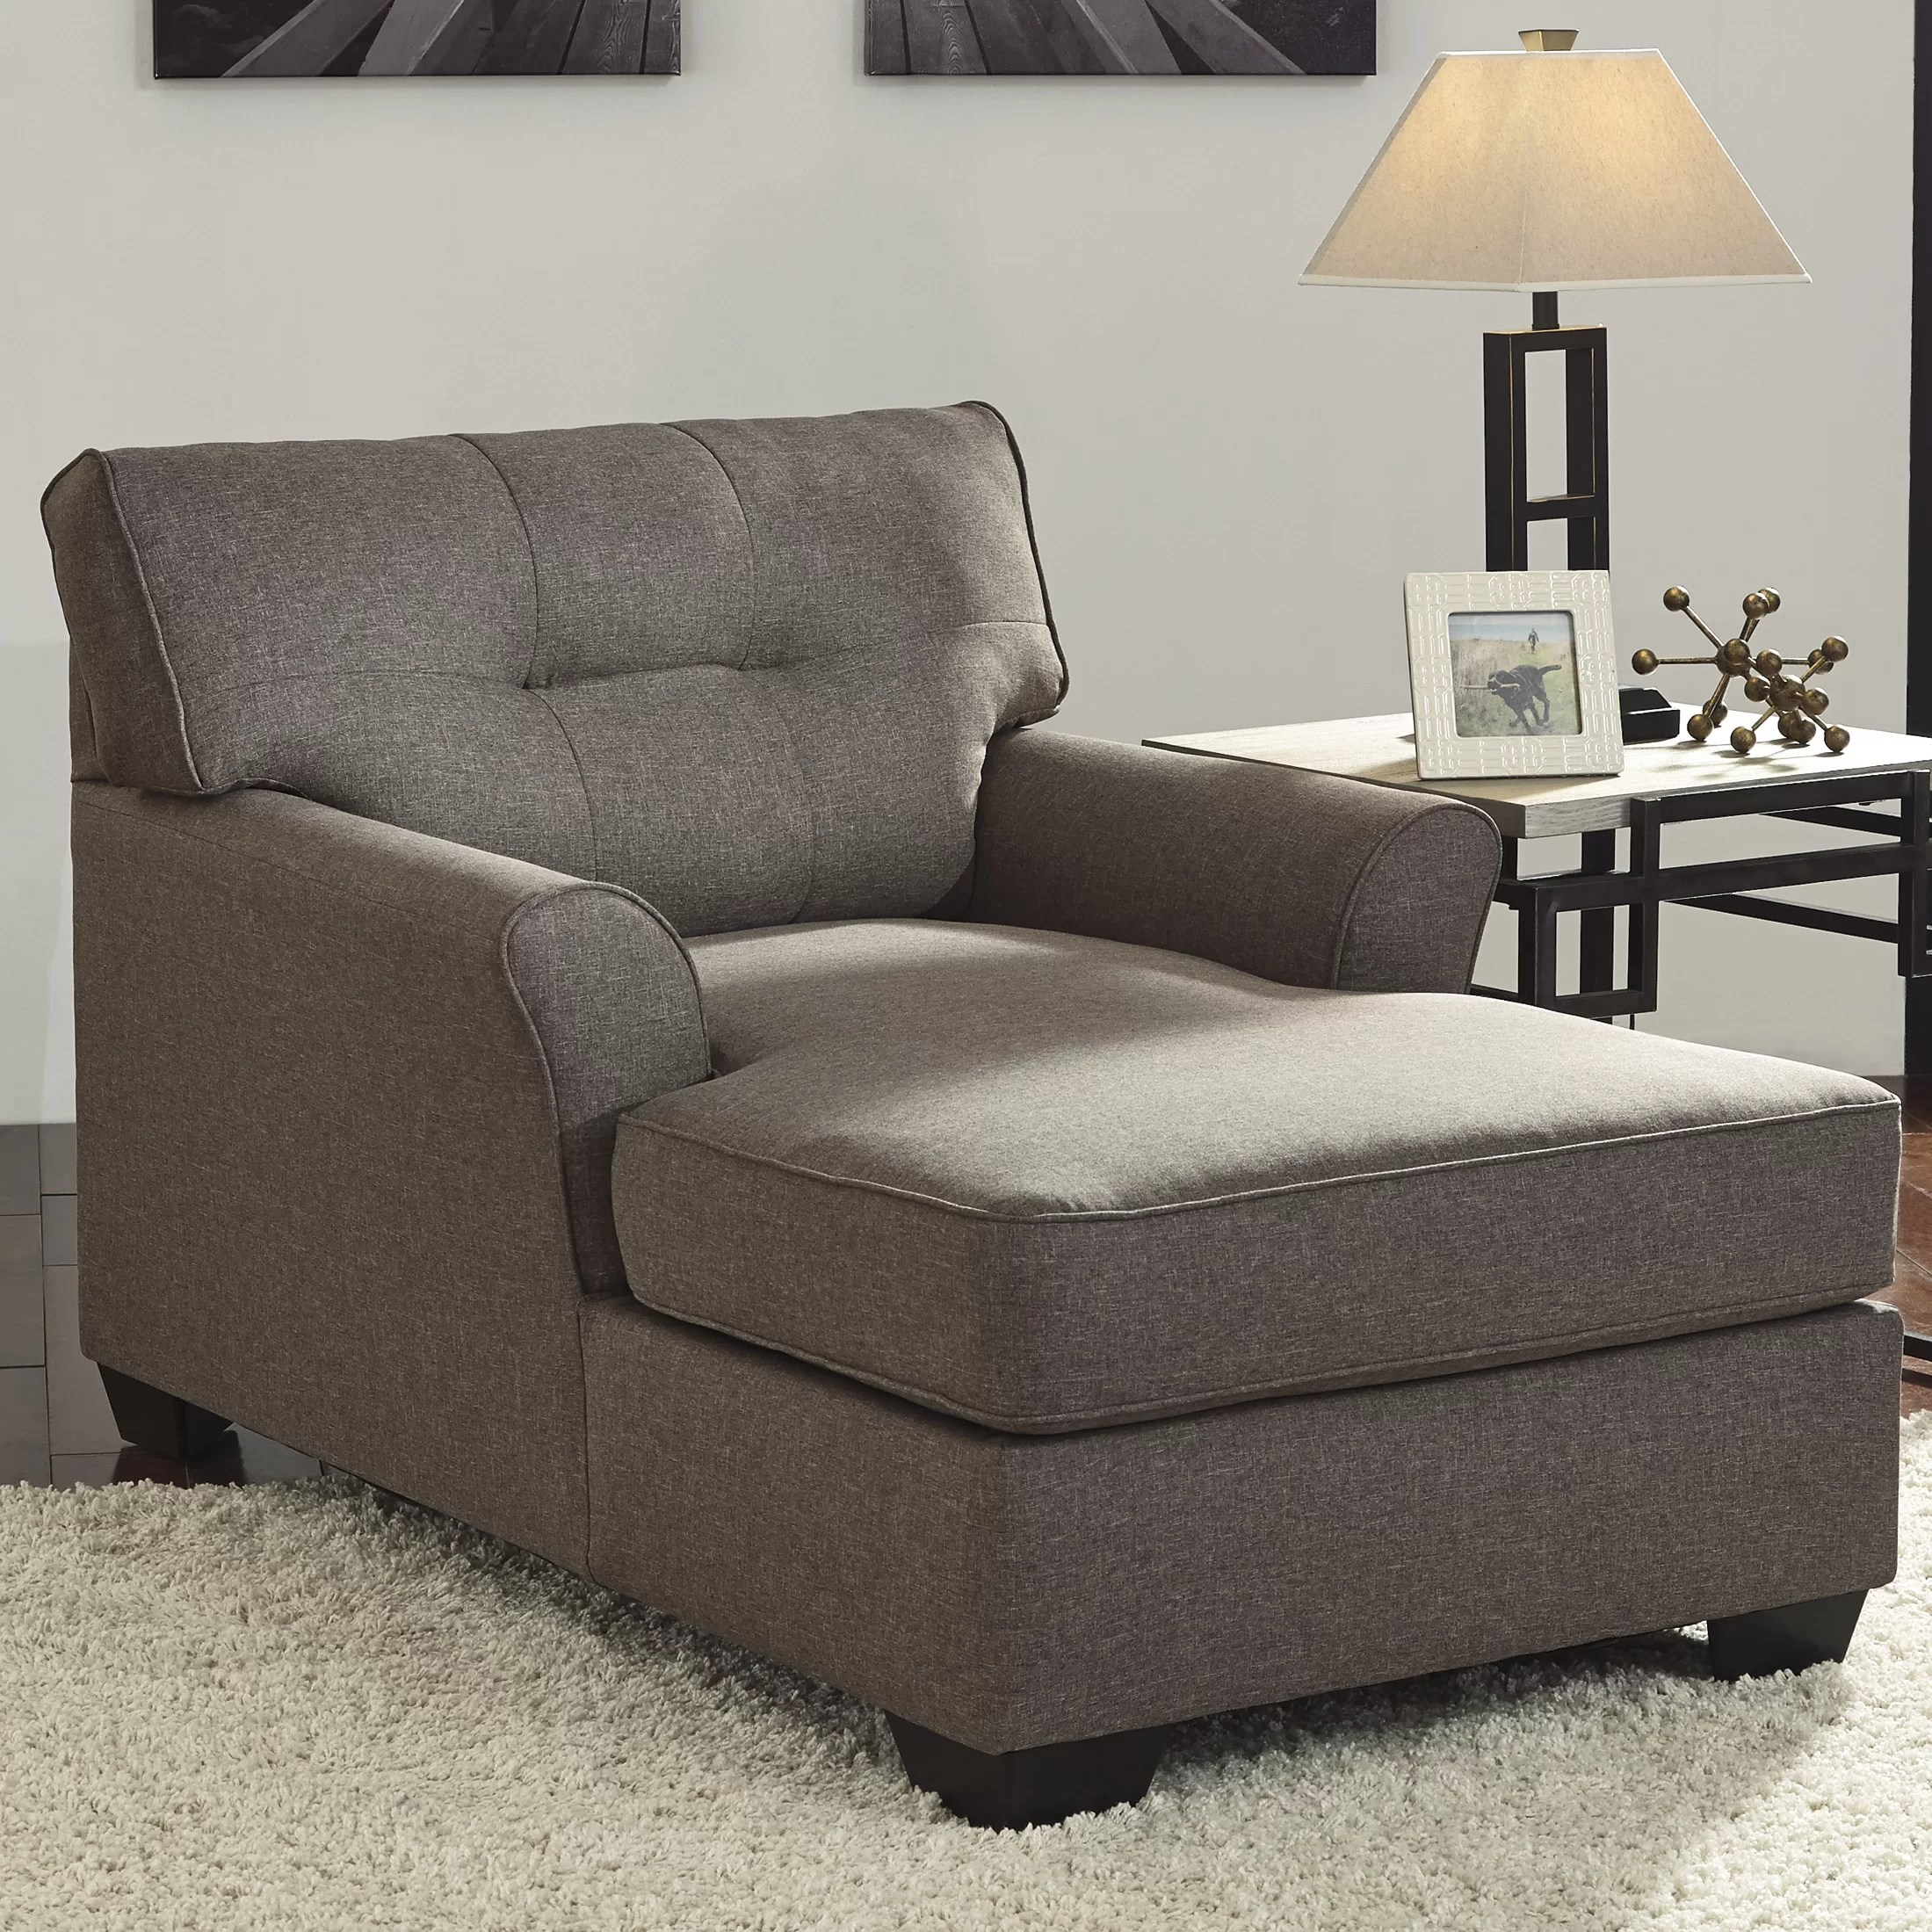 Signature Design by Ashley Tibbee Chaise Lounge  Reviews